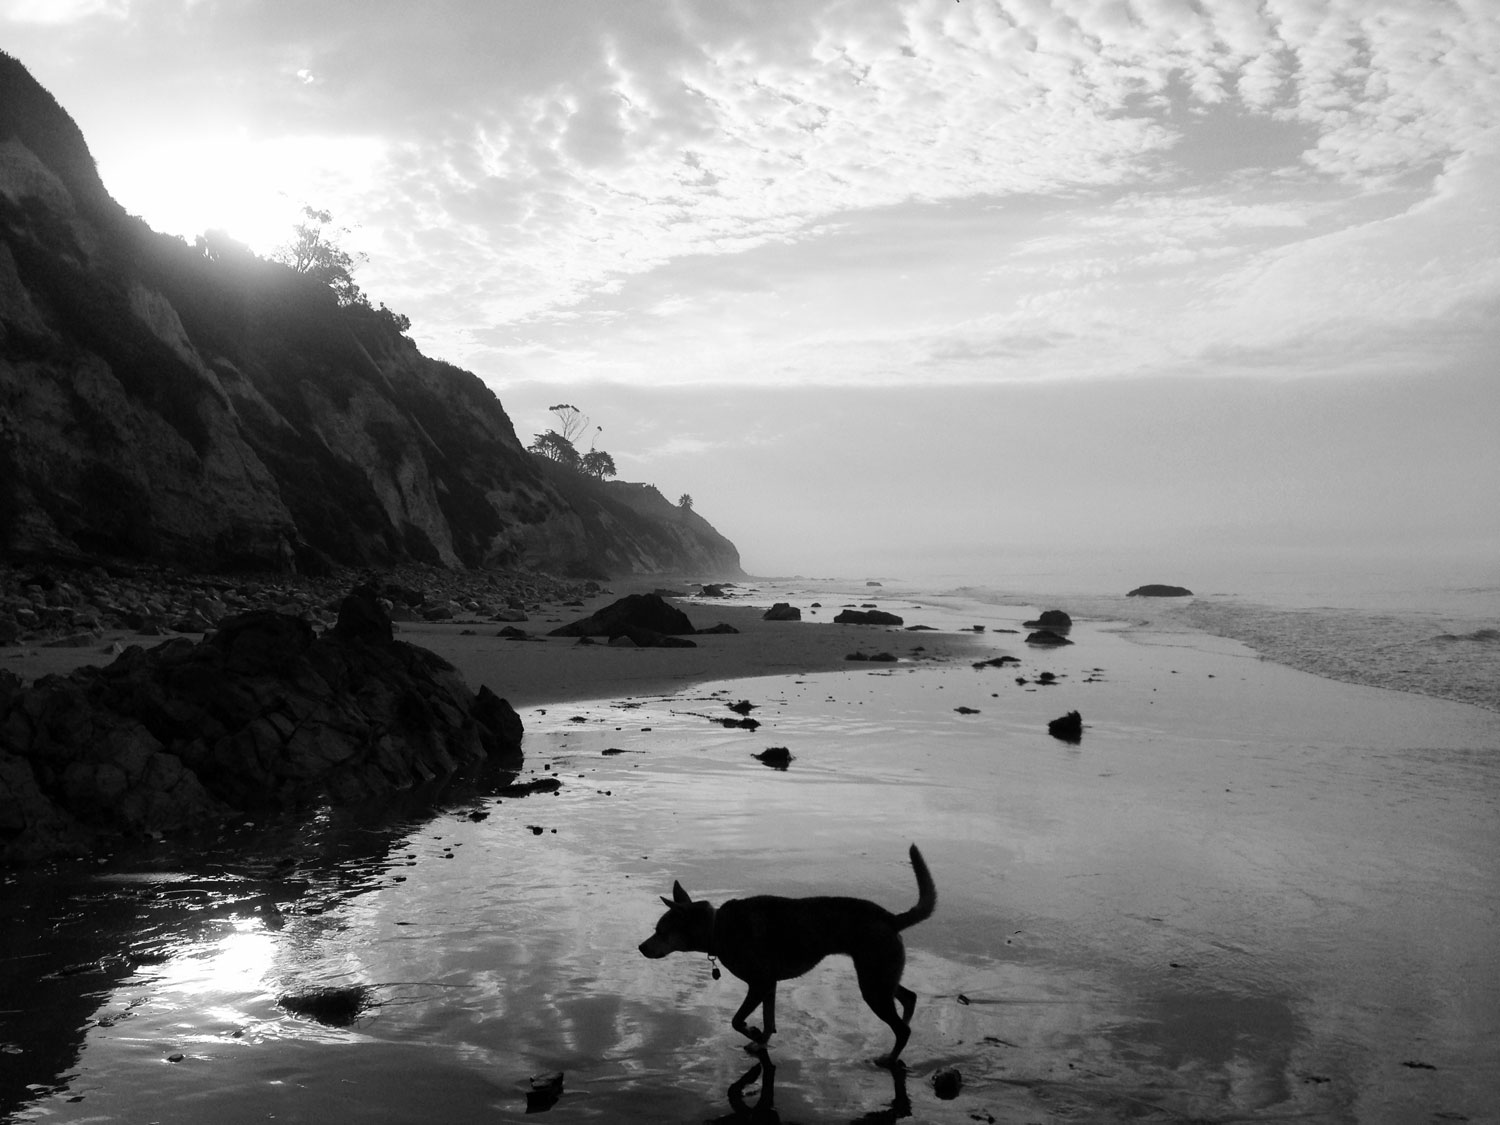 Zoe 'n Me {a dog blog} Wordless Wednesday | Jordan benShea | Santa Barbara, California